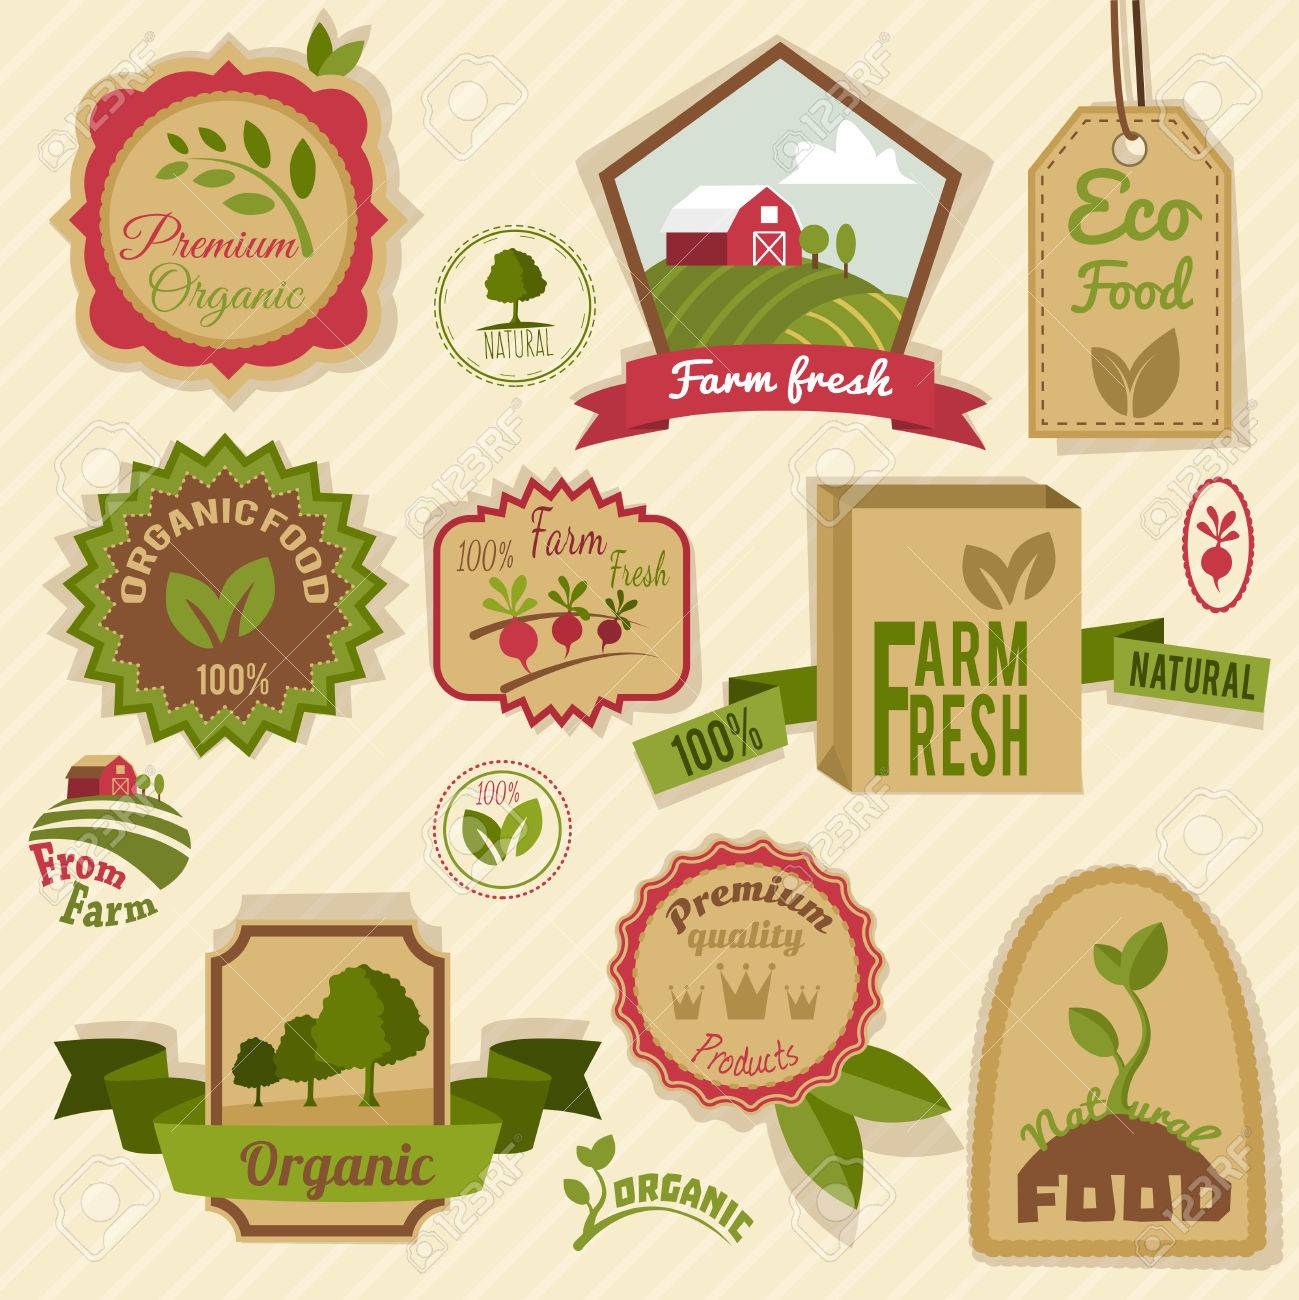 Farm Fresh Natural Products Organic Agriculture Food Vintage ...